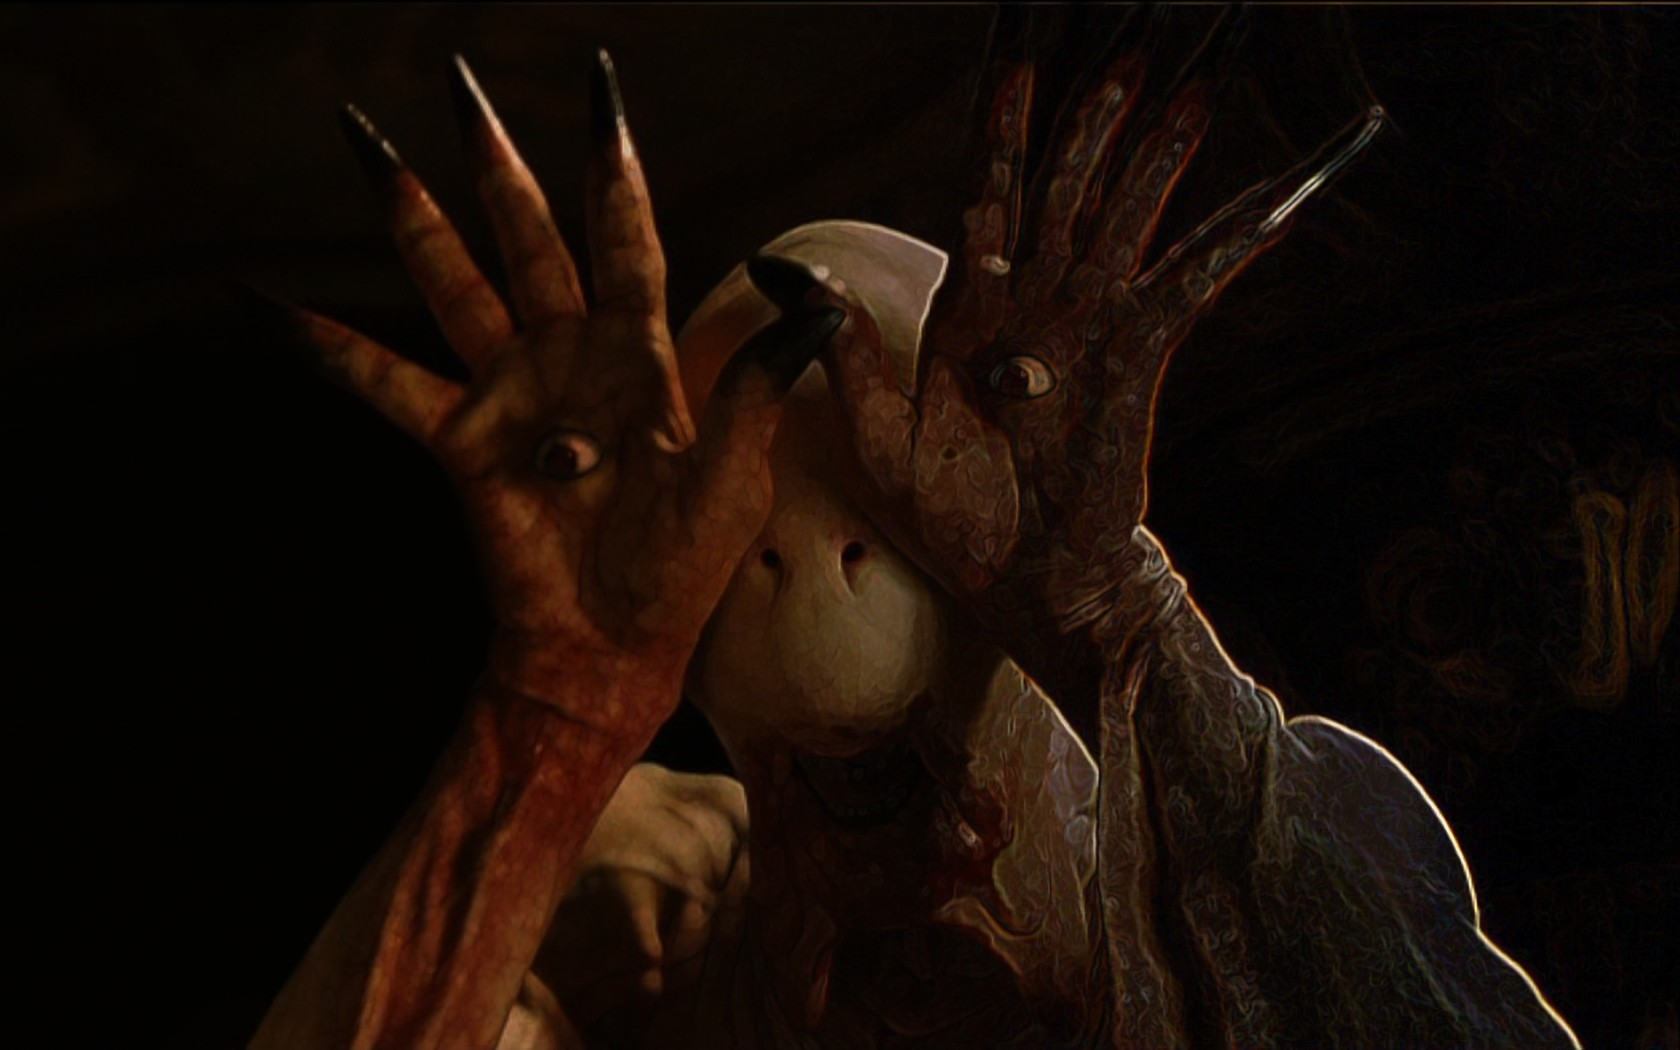 Pan's Labyrinth Computer Wallpaper, Desktop Background ... Labyrinth Movie Wallpaper